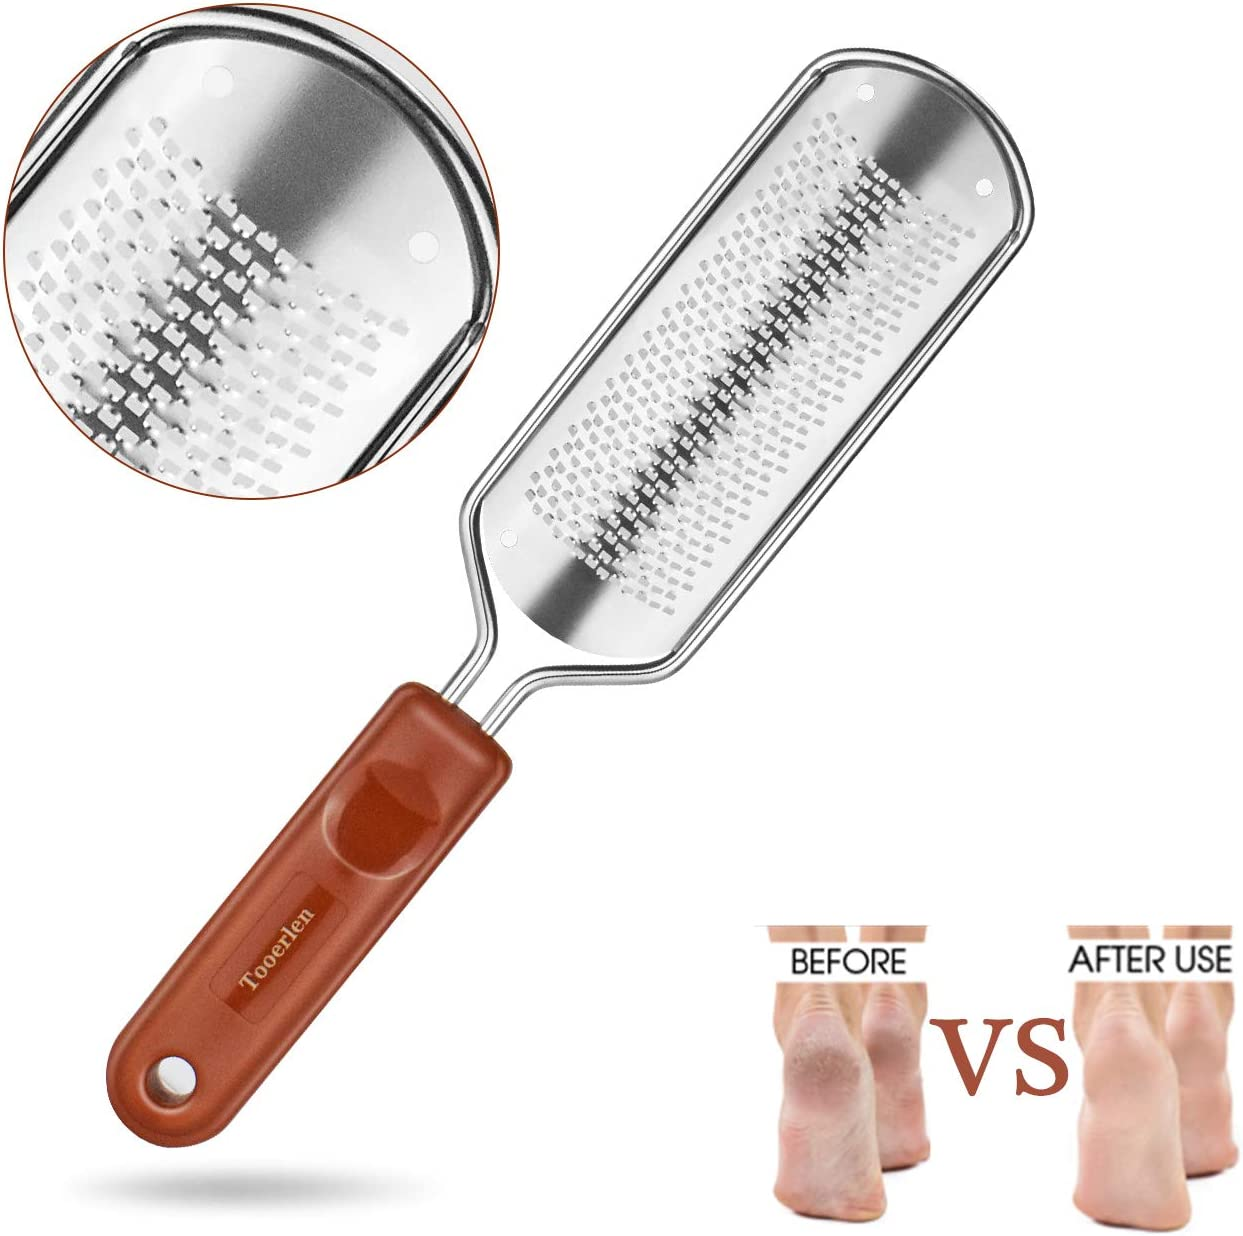 Tooerlen Foot Rasp Foot File Foot Grater, Can be Used on Both Wet and Dry Feet, Best Foot Care Pedicure Metal Surface Tool to Remove Hard Skin, for Extra Smooth and Beauty Foot- (Colossal)